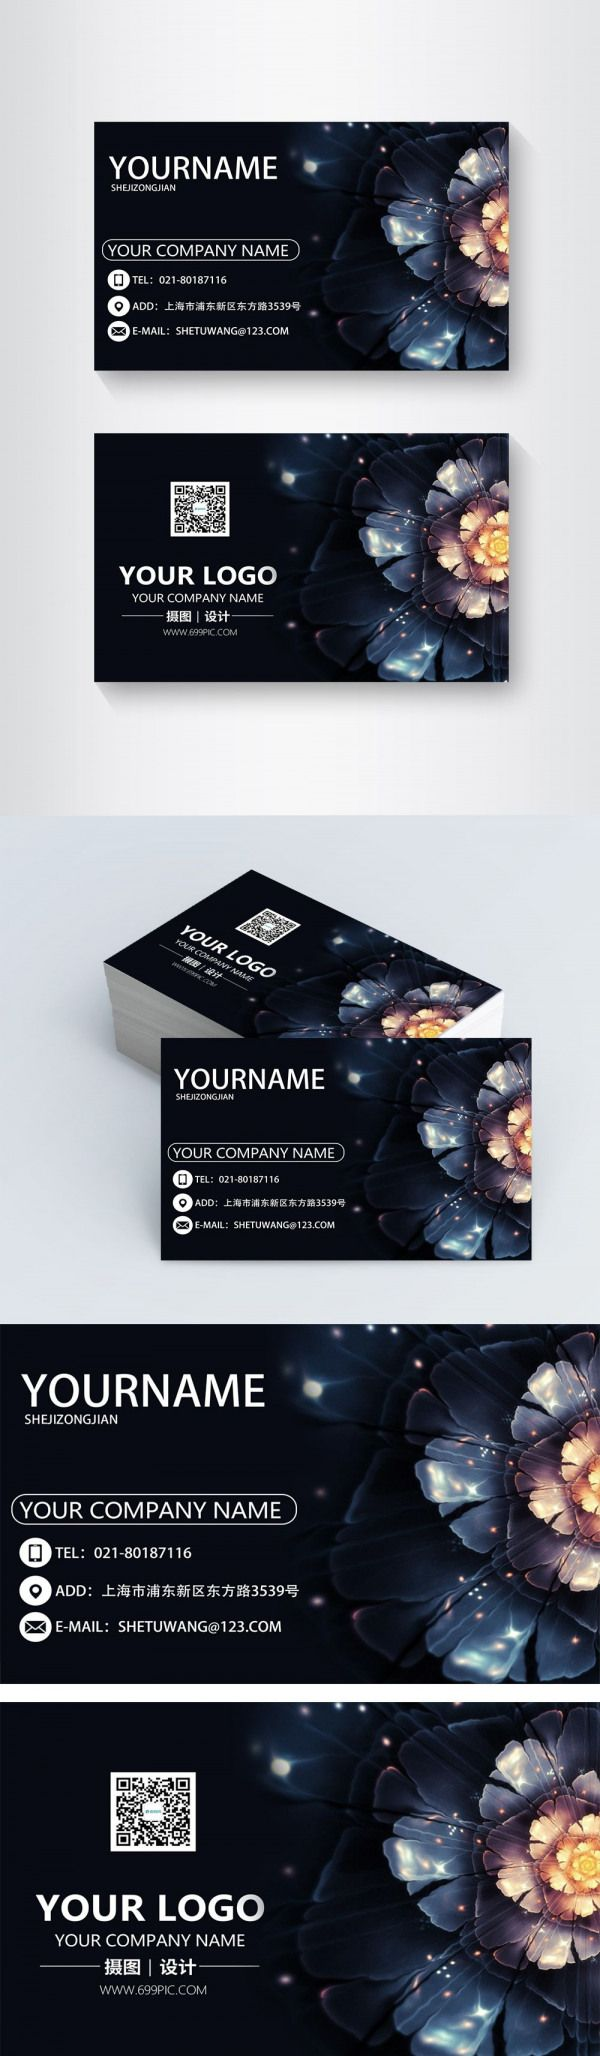 Dazzle Of Dark Blue Flowers Business Business Card Business Card